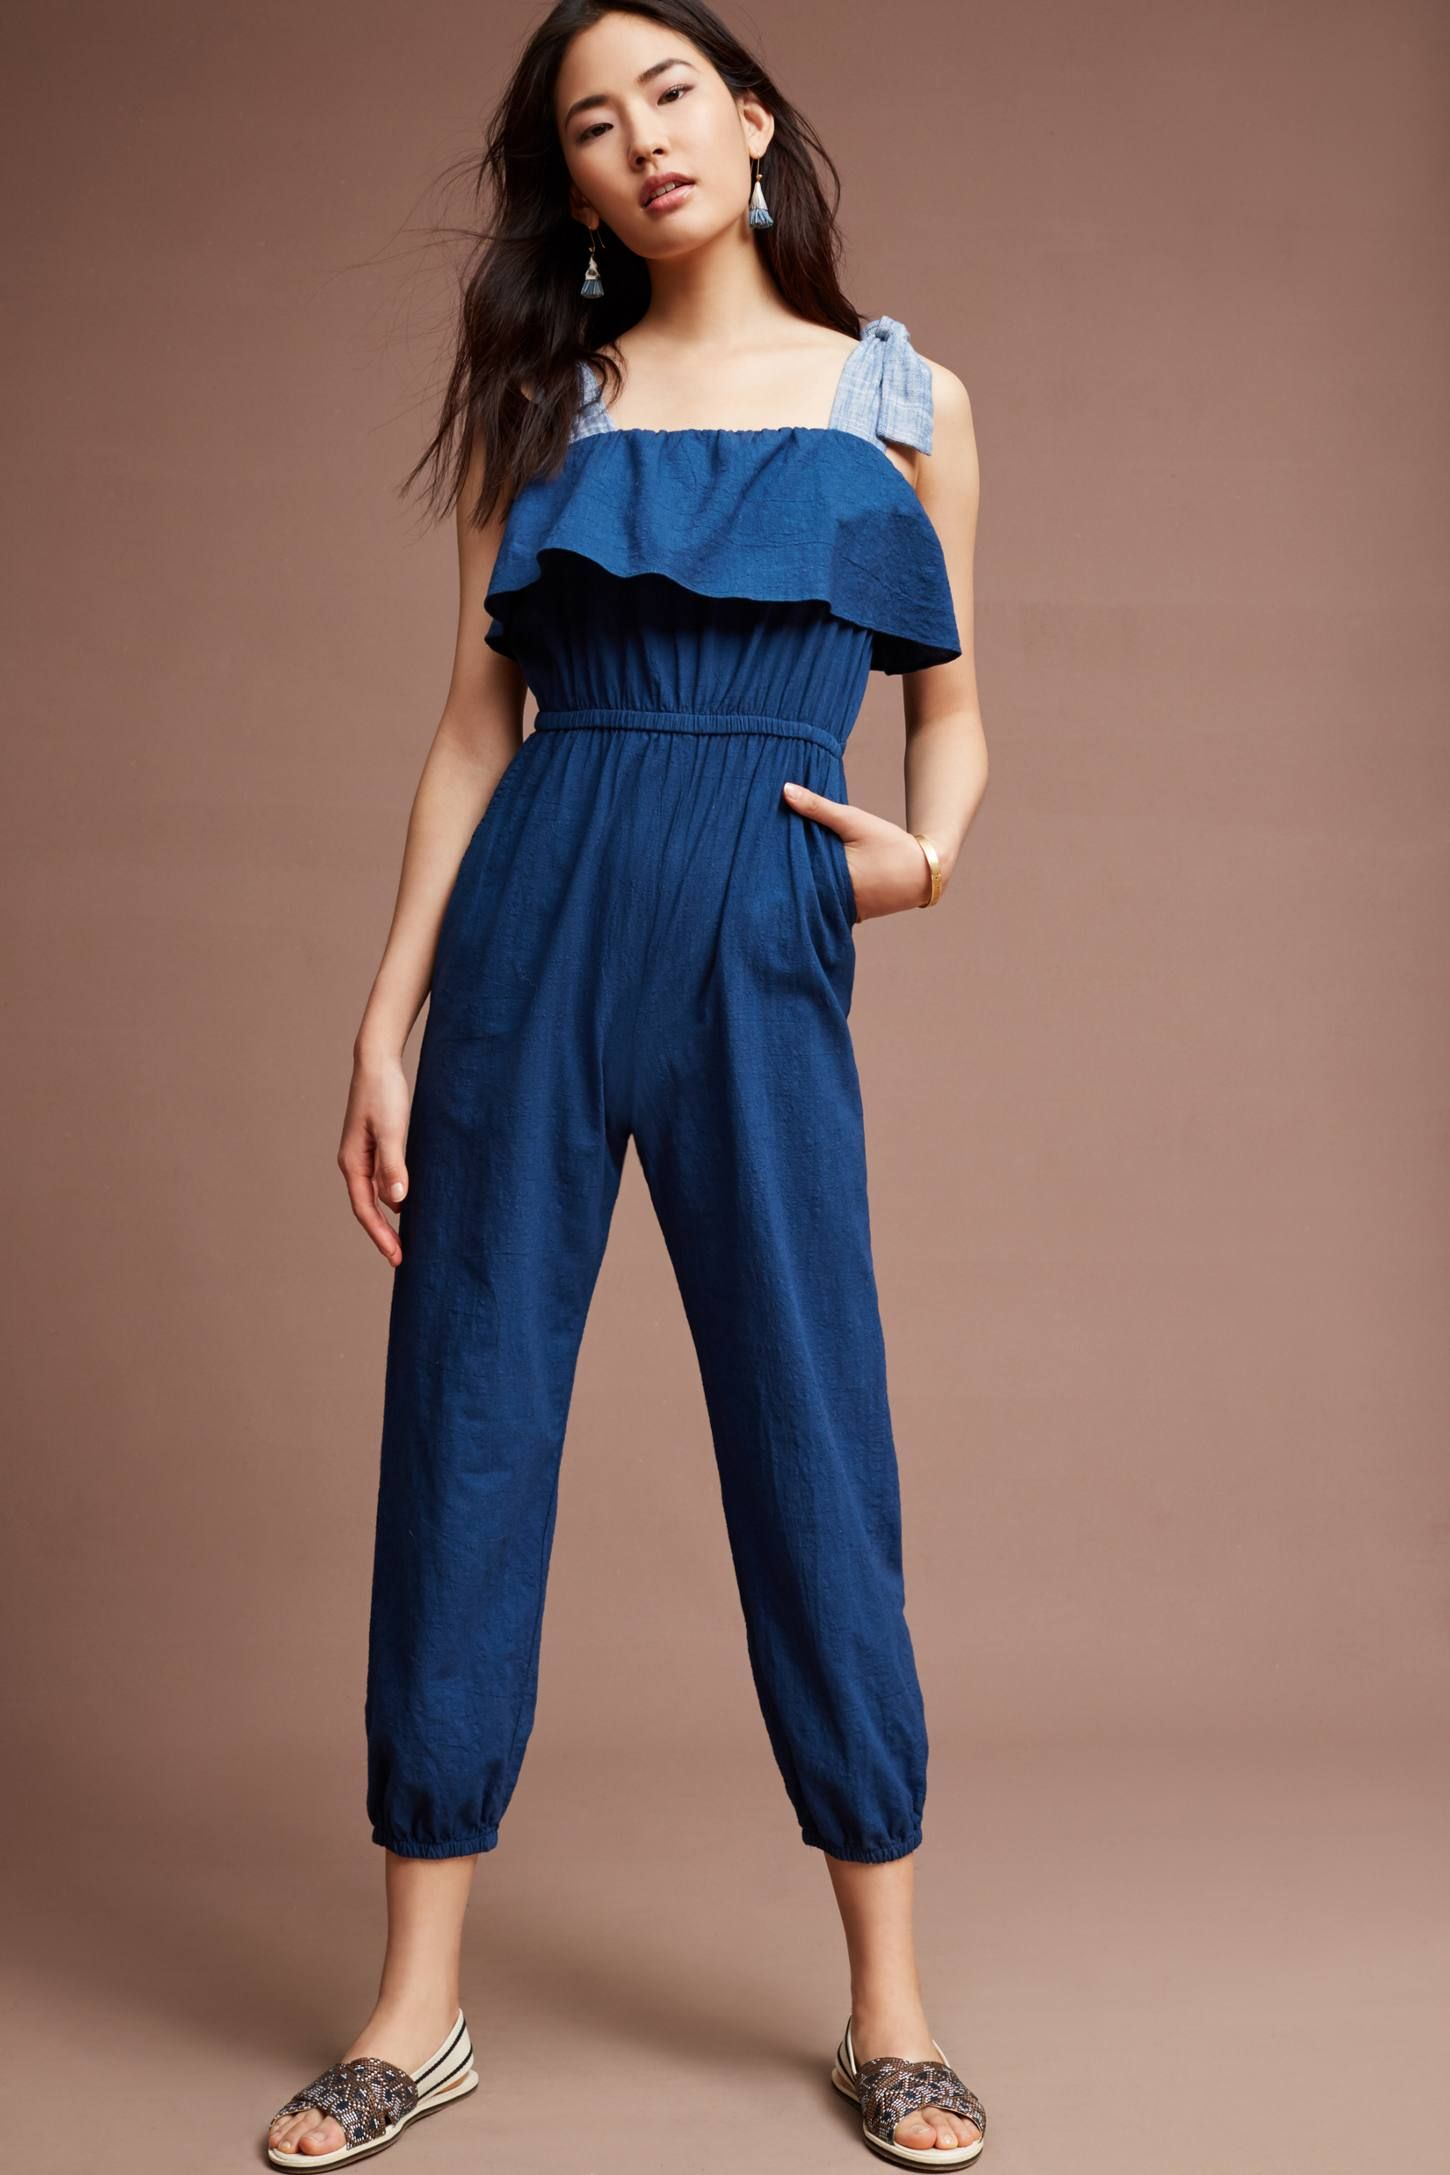 fa787dbc54b Shop the Torrance Tie-Shoulder Jumpsuit and more Anthropologie at  Anthropologie today. Read customer reviews